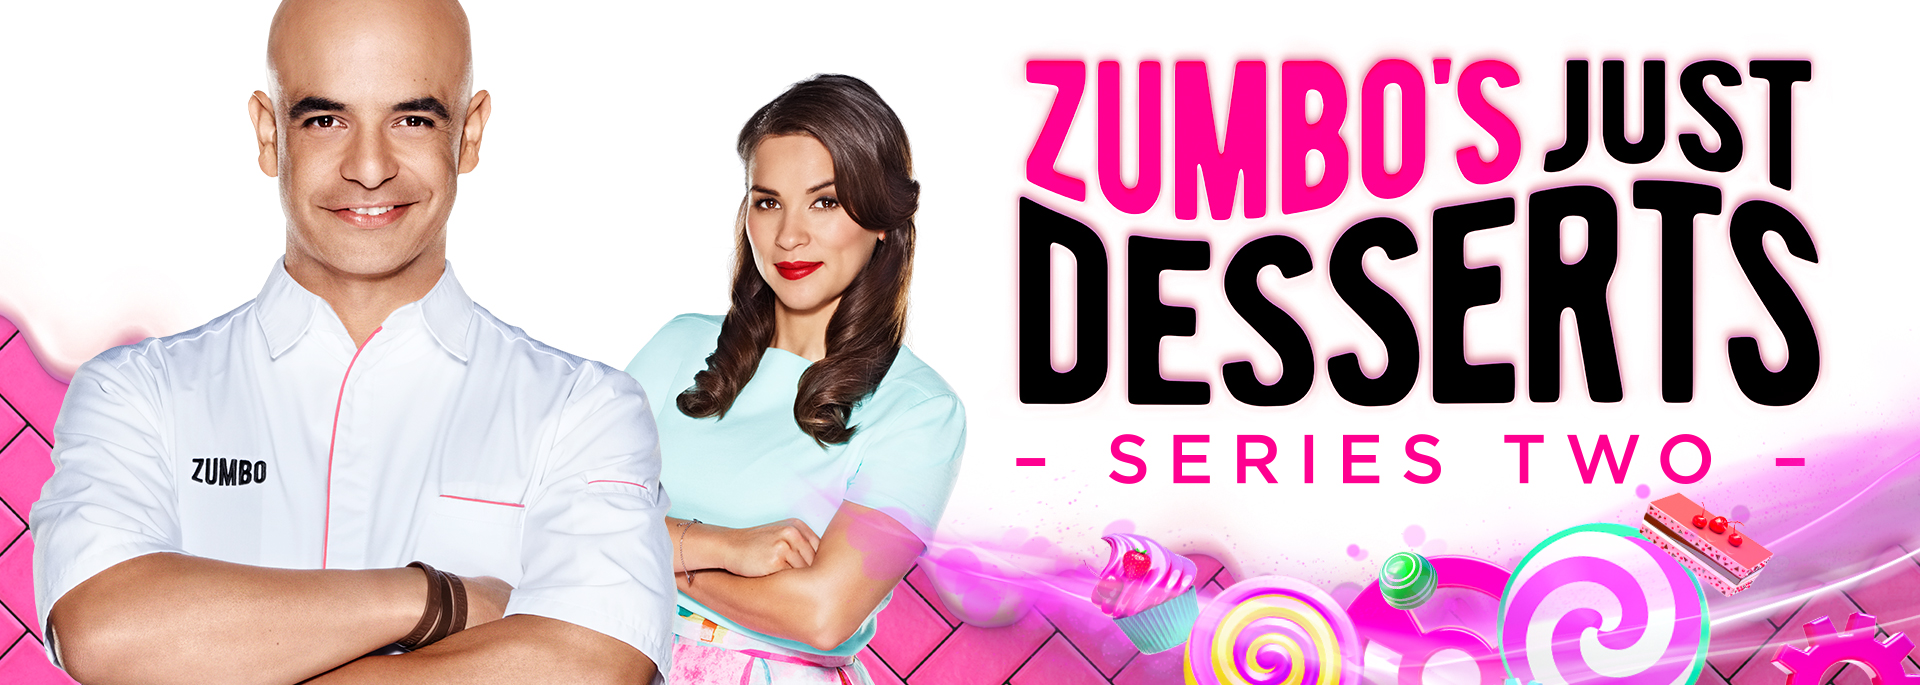 Proud supplier for Zumbo's Just Desserts.